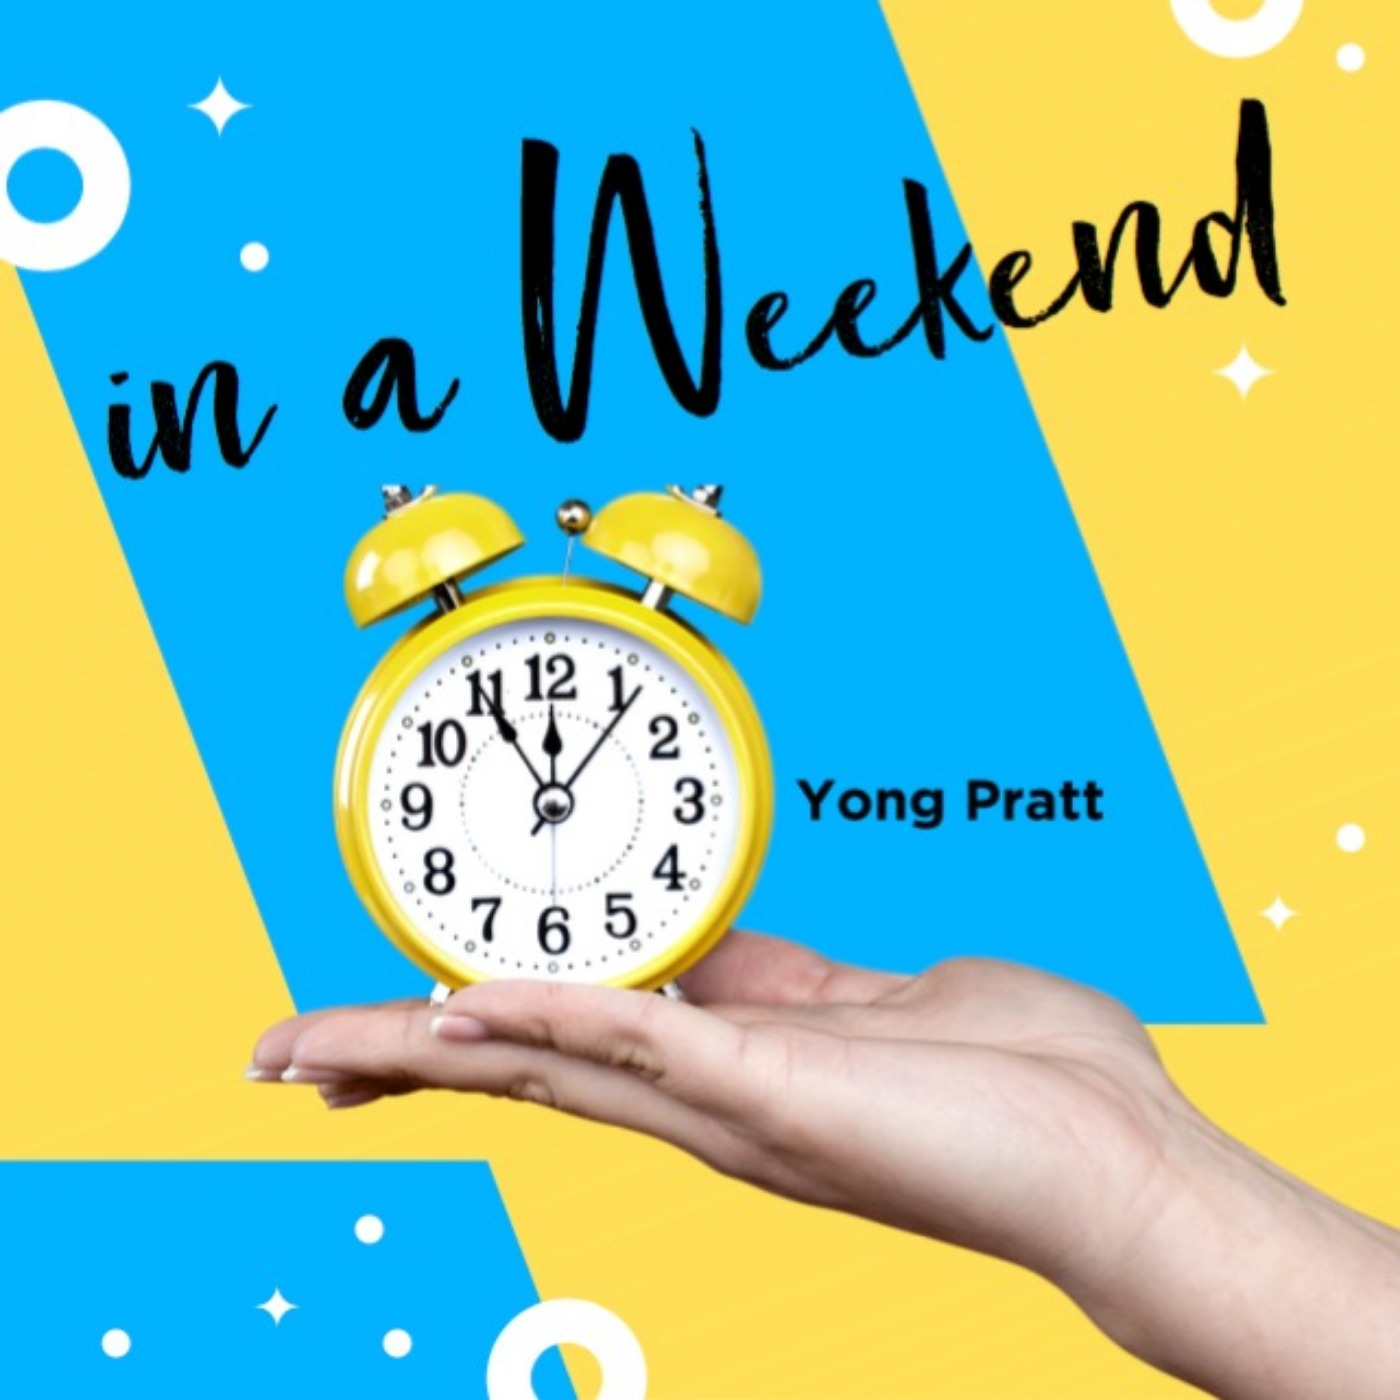 In a Weekend with Yong Pratt